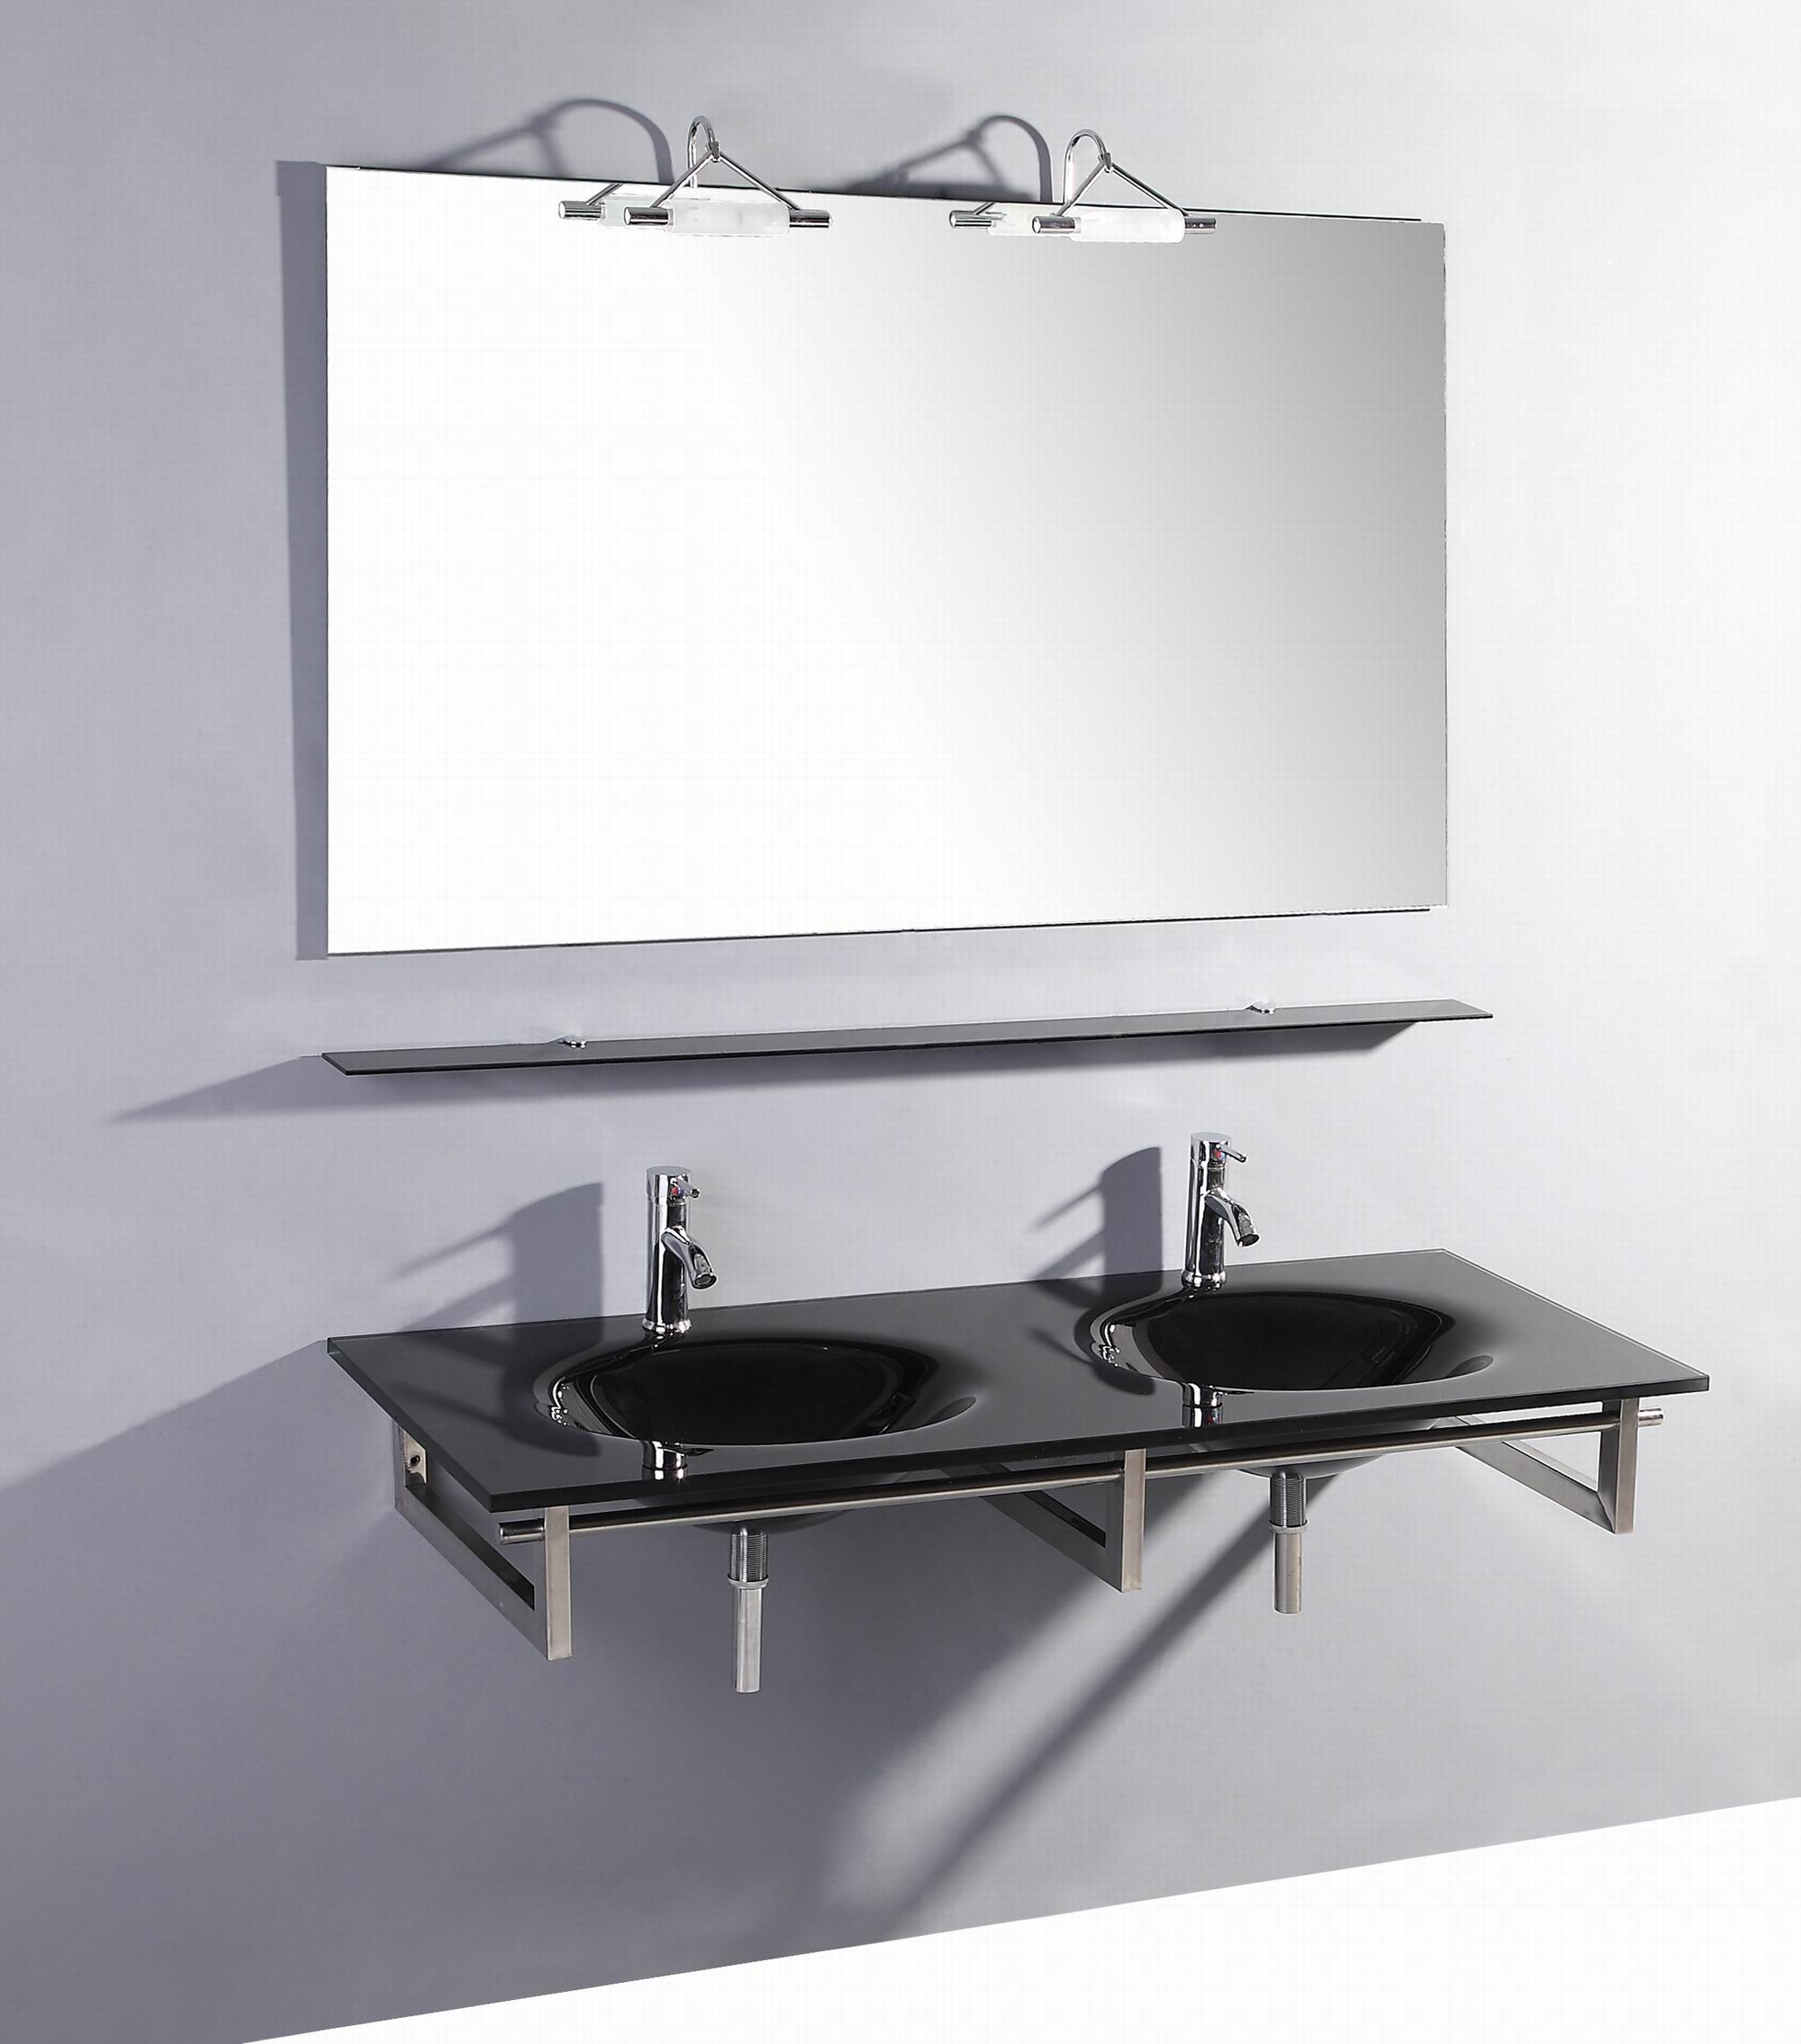 55-inch Belvedere Modern Wall Mounted Black Glass Double Bathroom Vanity